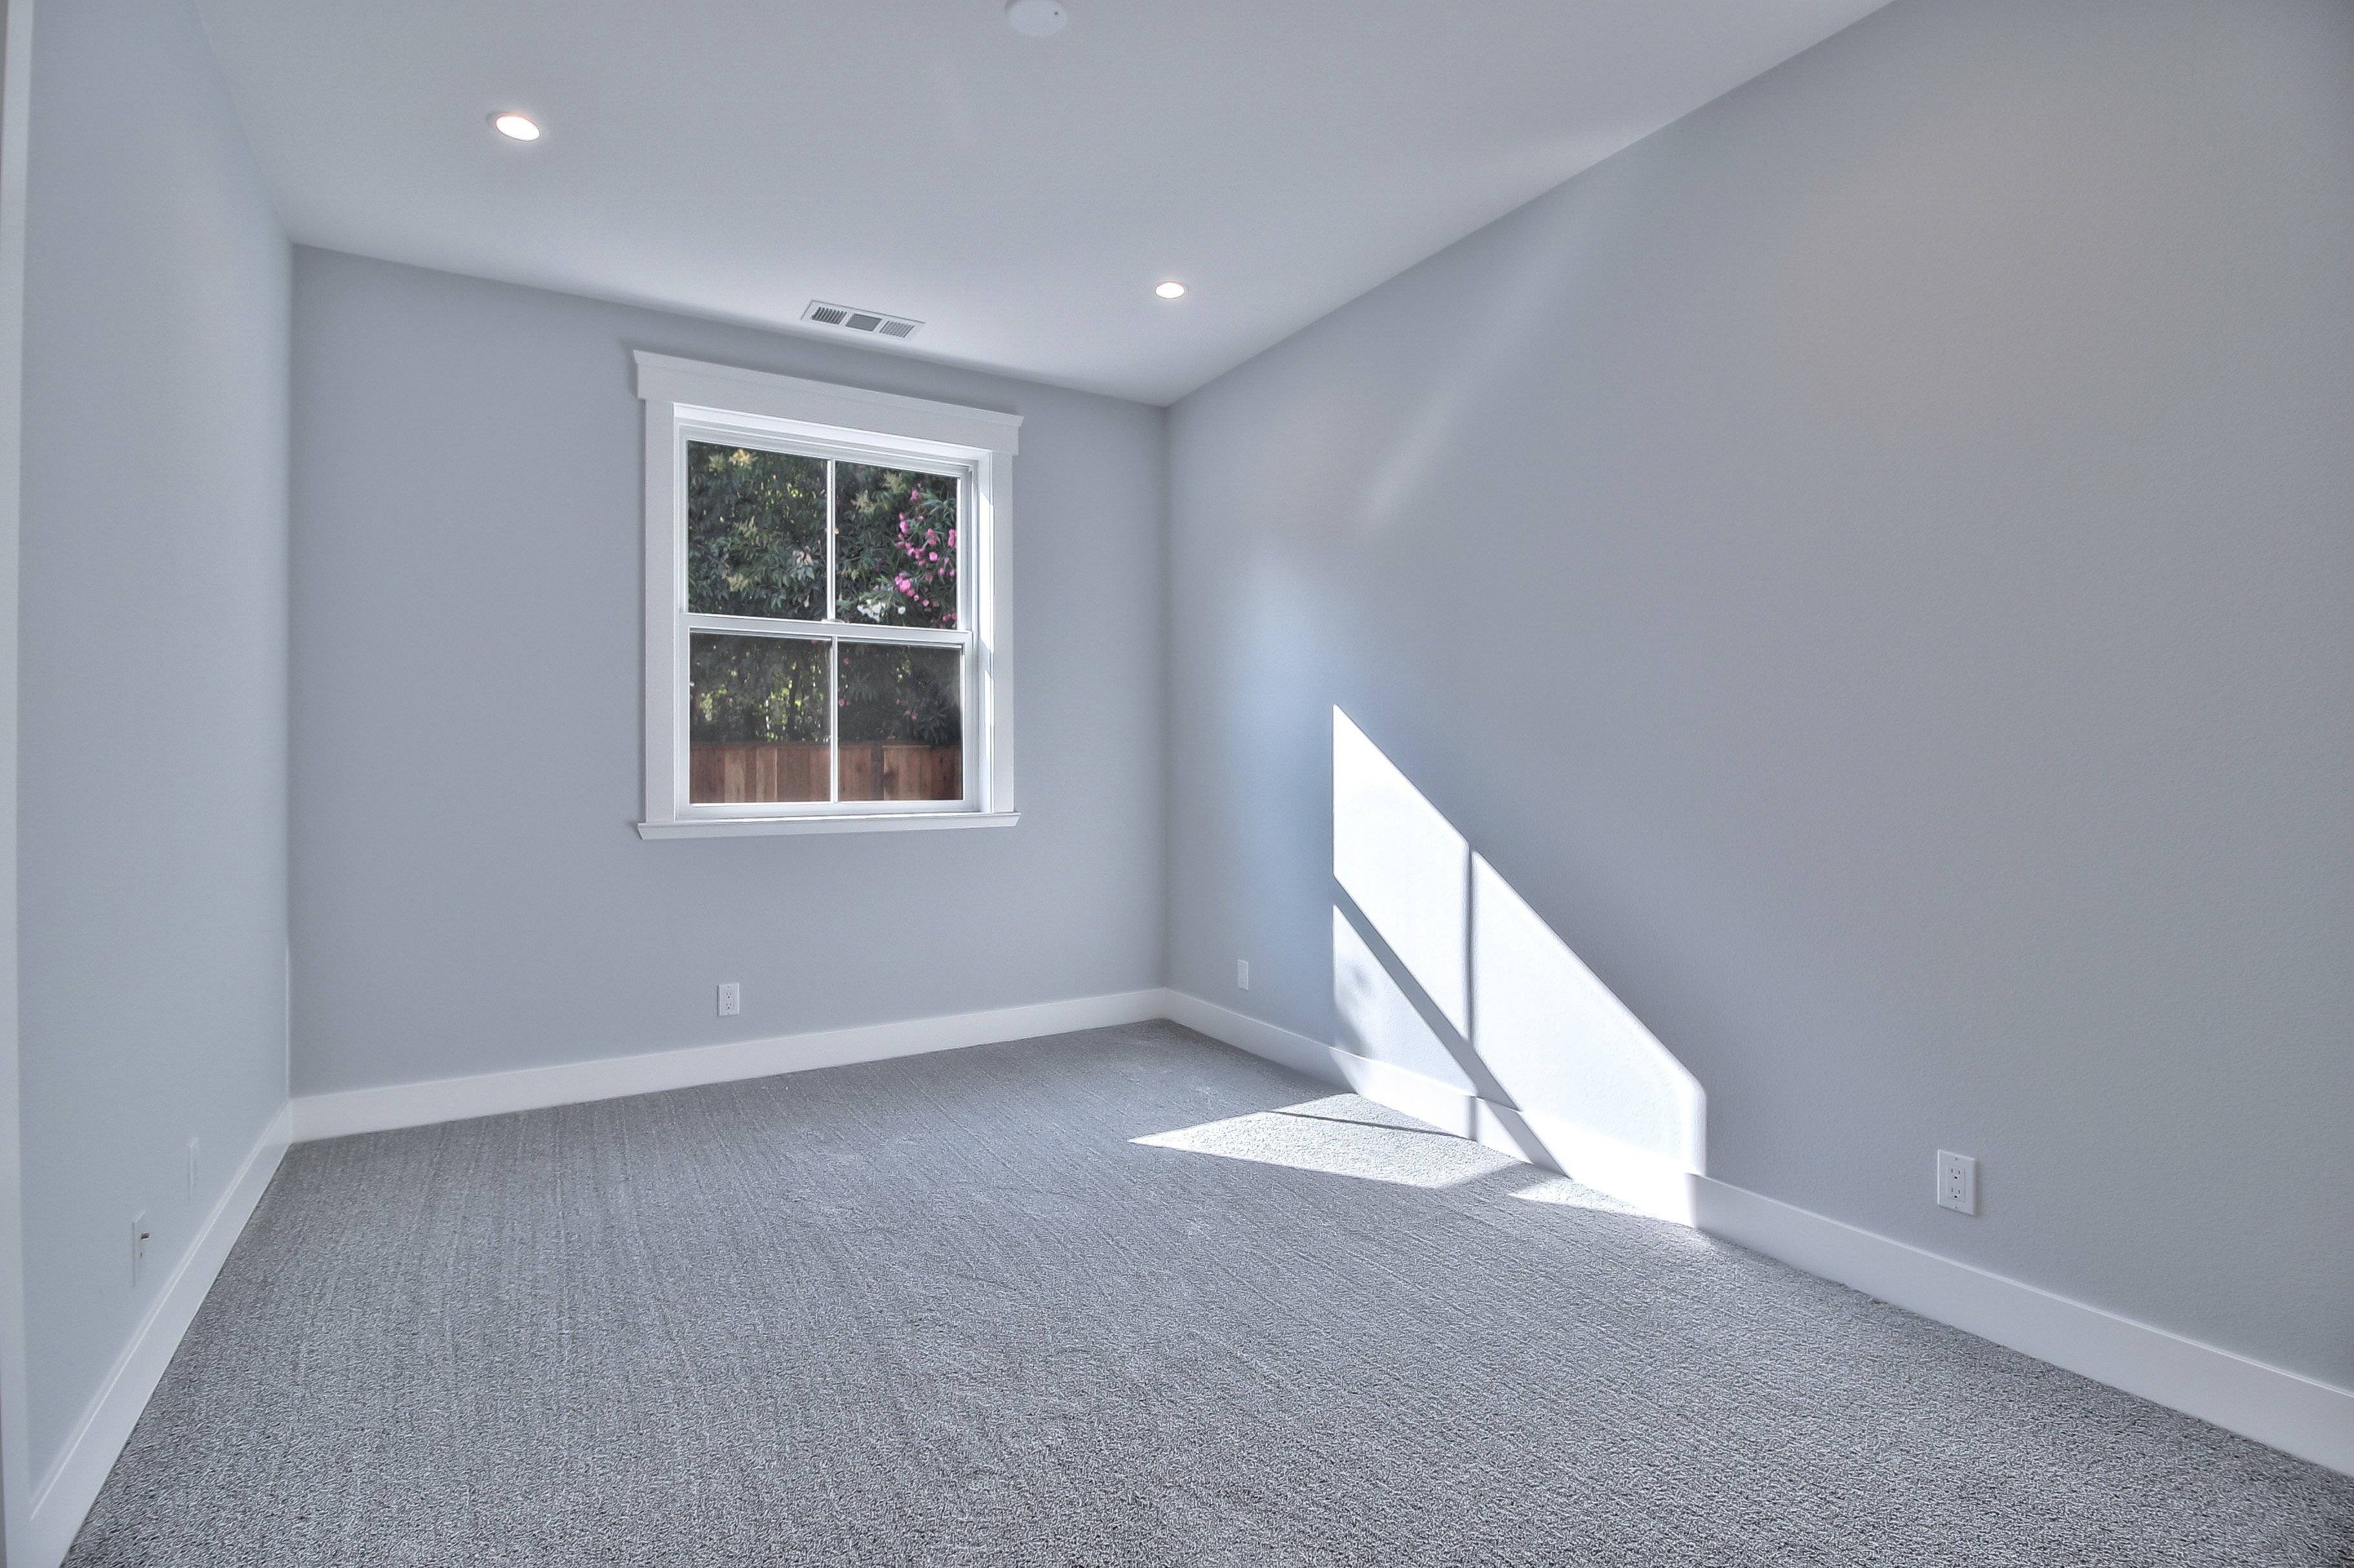 Room # 2 (will be furnished)